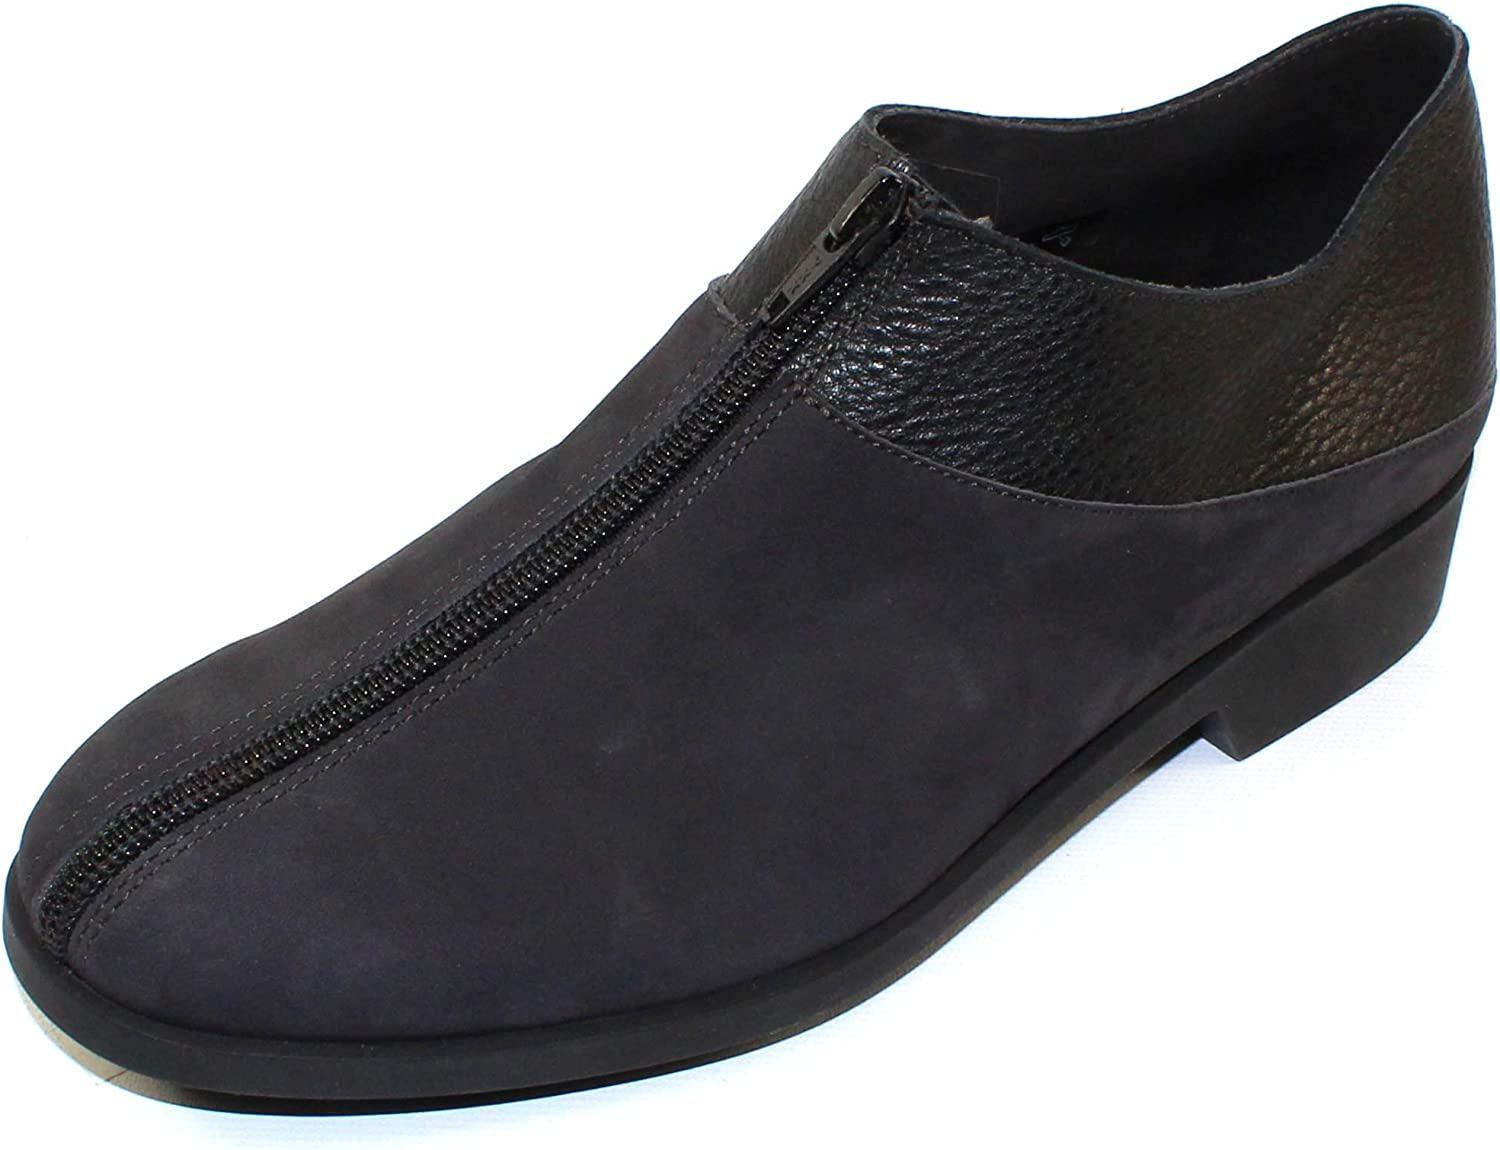 Arche Women's Iolong in Lauze Nubuck black Hopi Grain Leather - bluee-Grey Black - Size 39 M